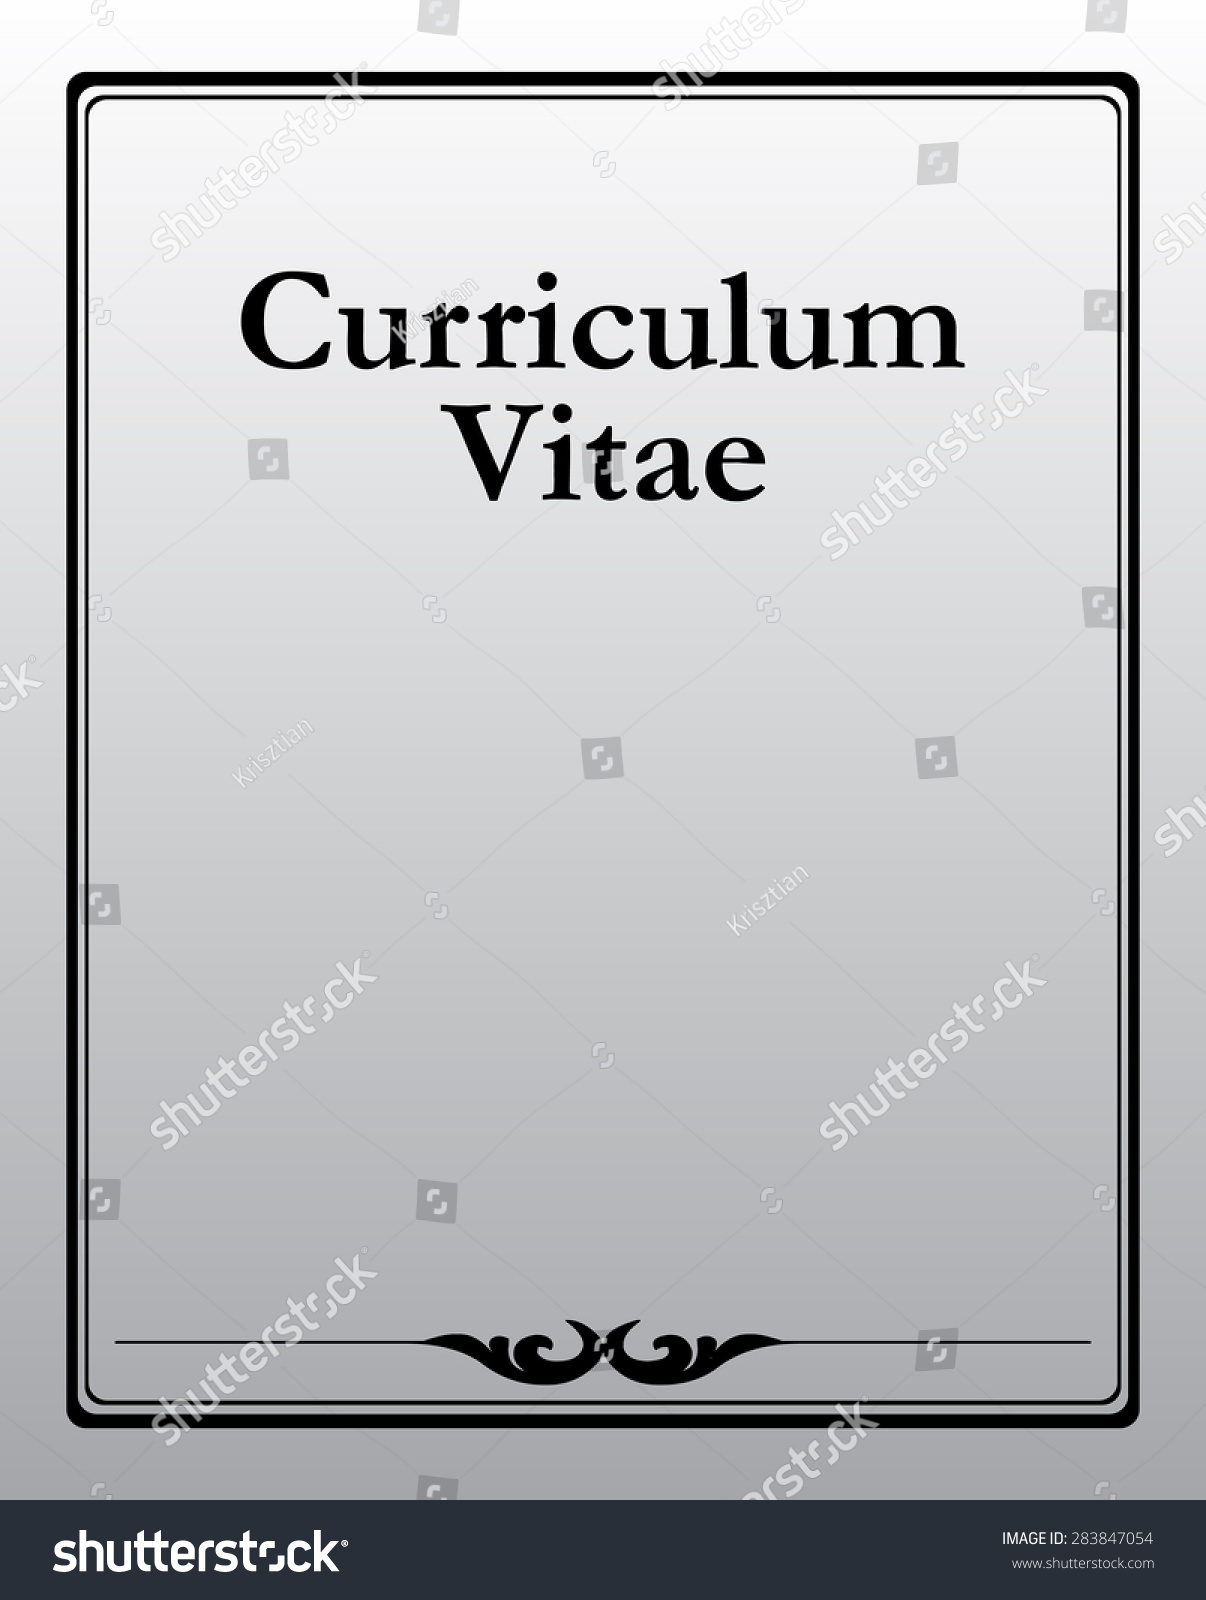 Curriculum Vitae Documentation Front Page Vector Stock Vector